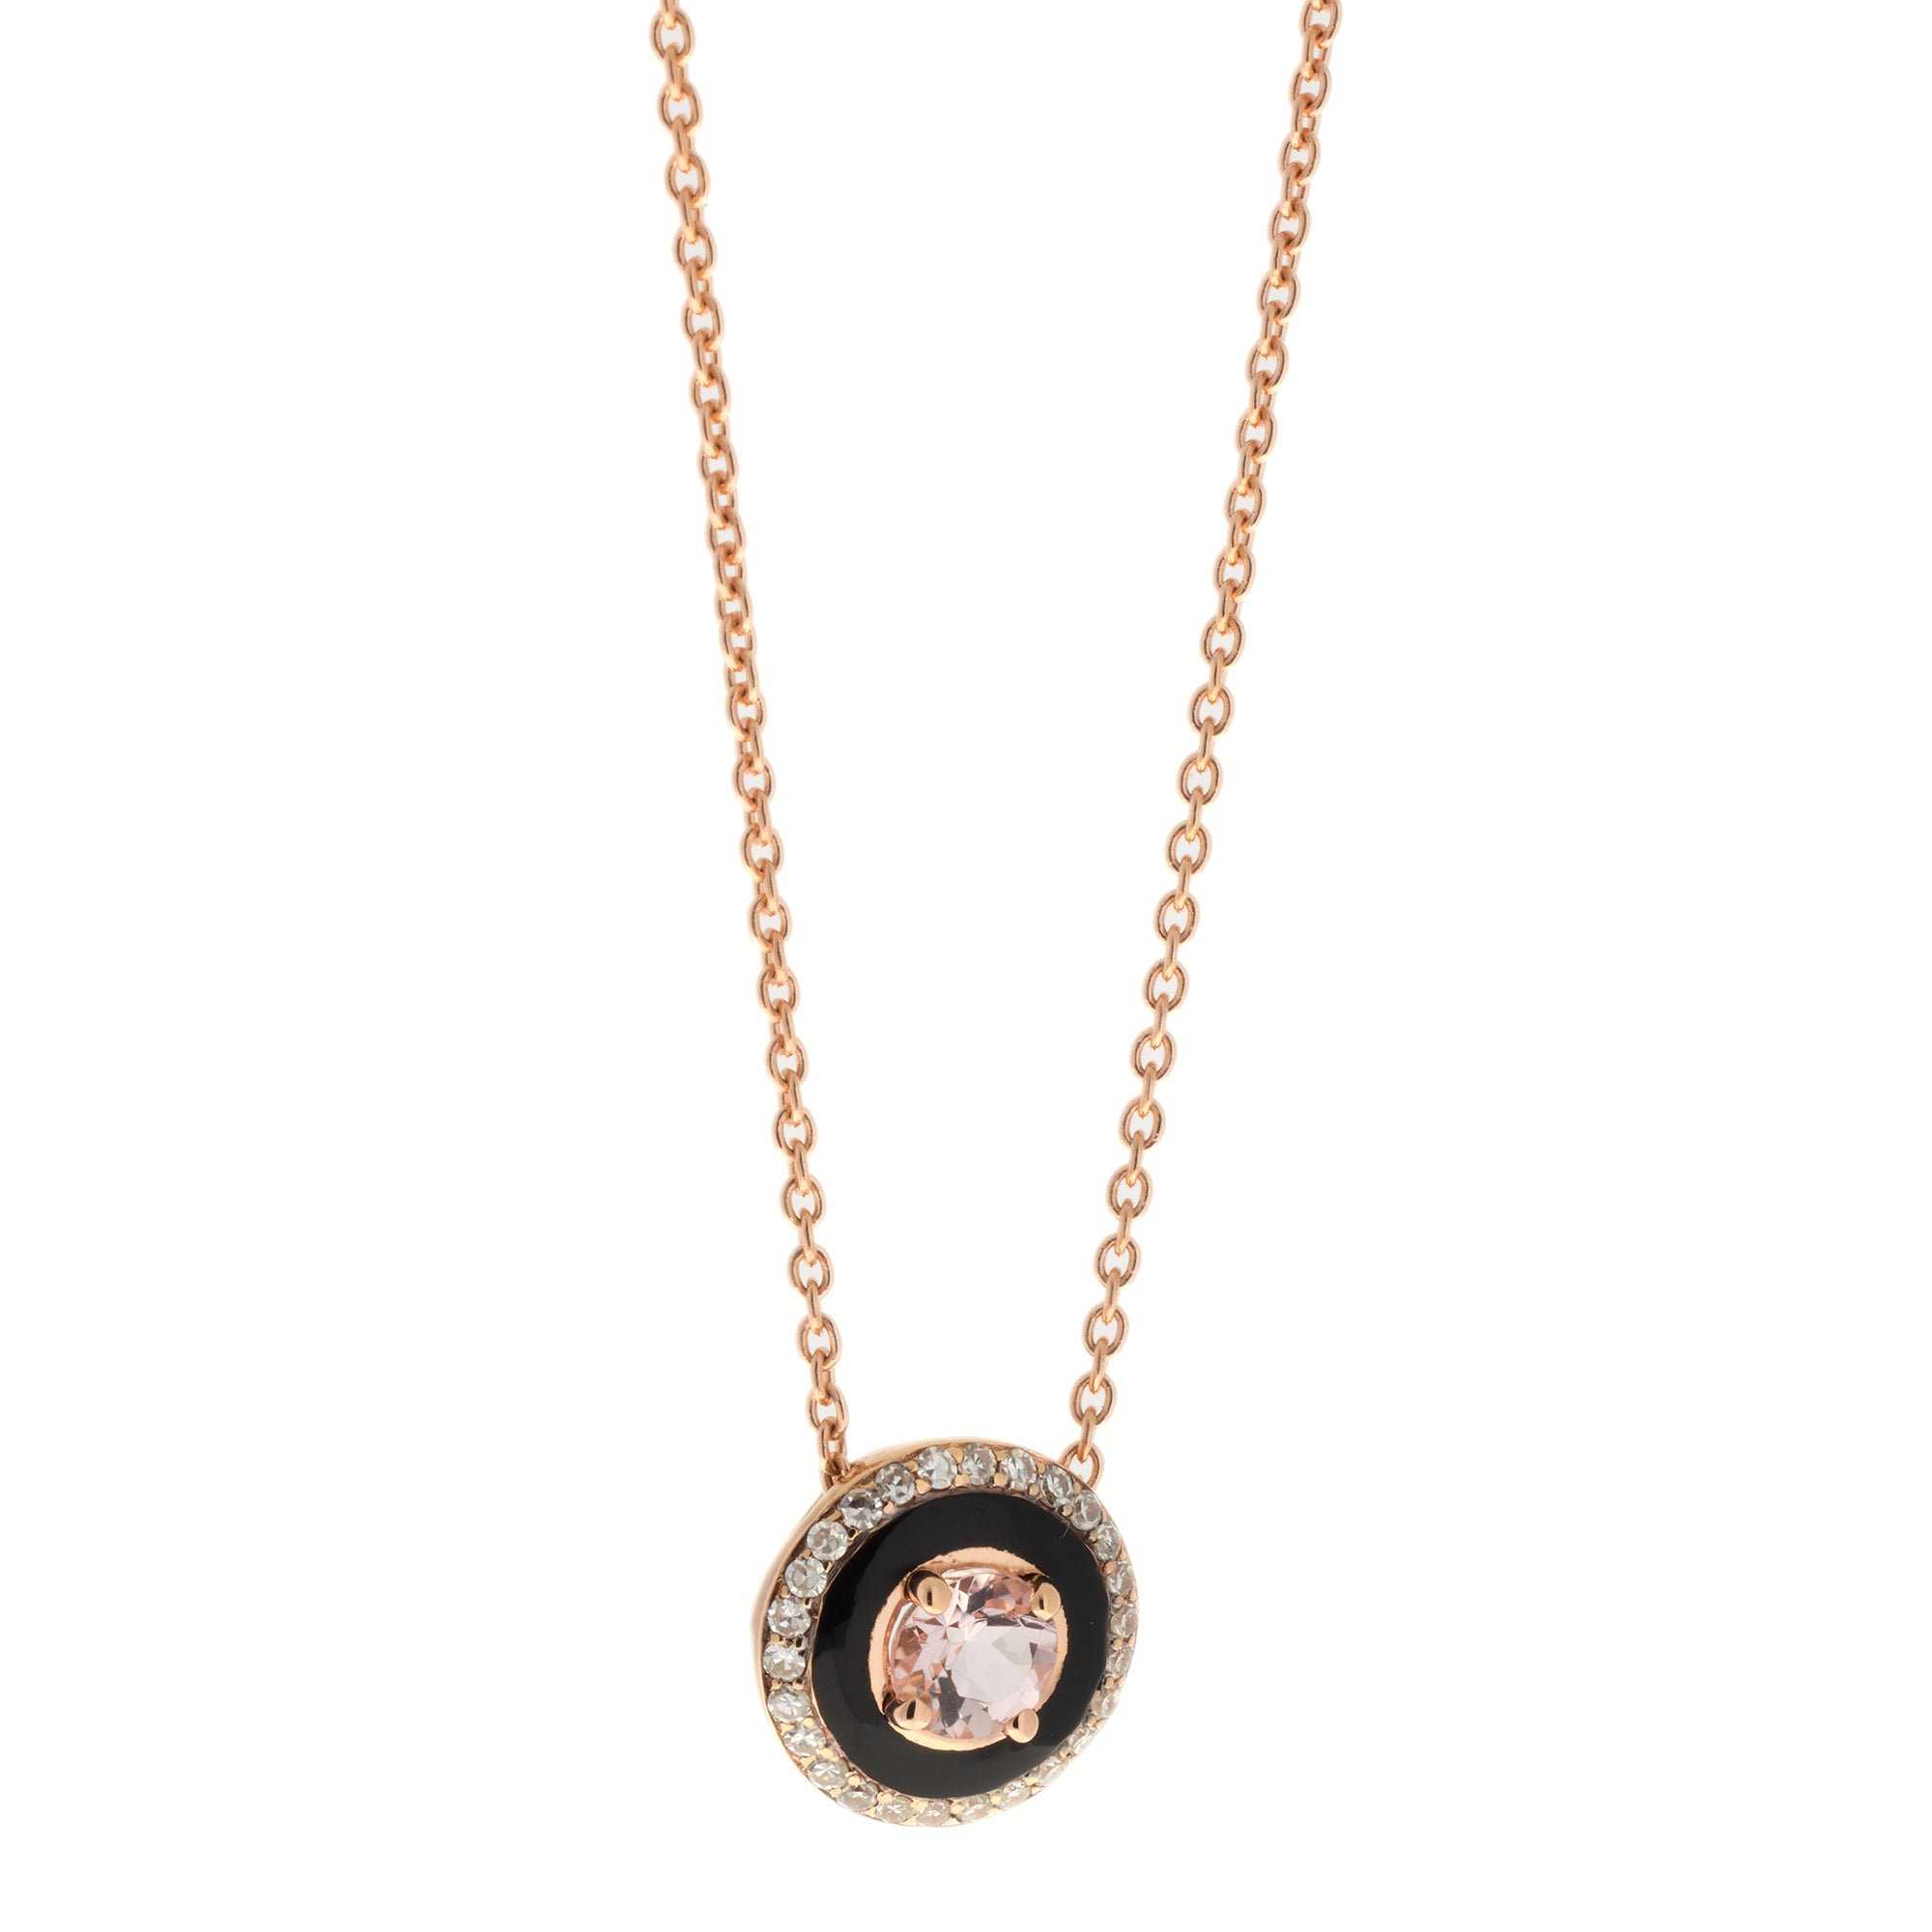 Morganite and Black Enamel Necklace by Selim Mouzannar for Broken English Jewelry